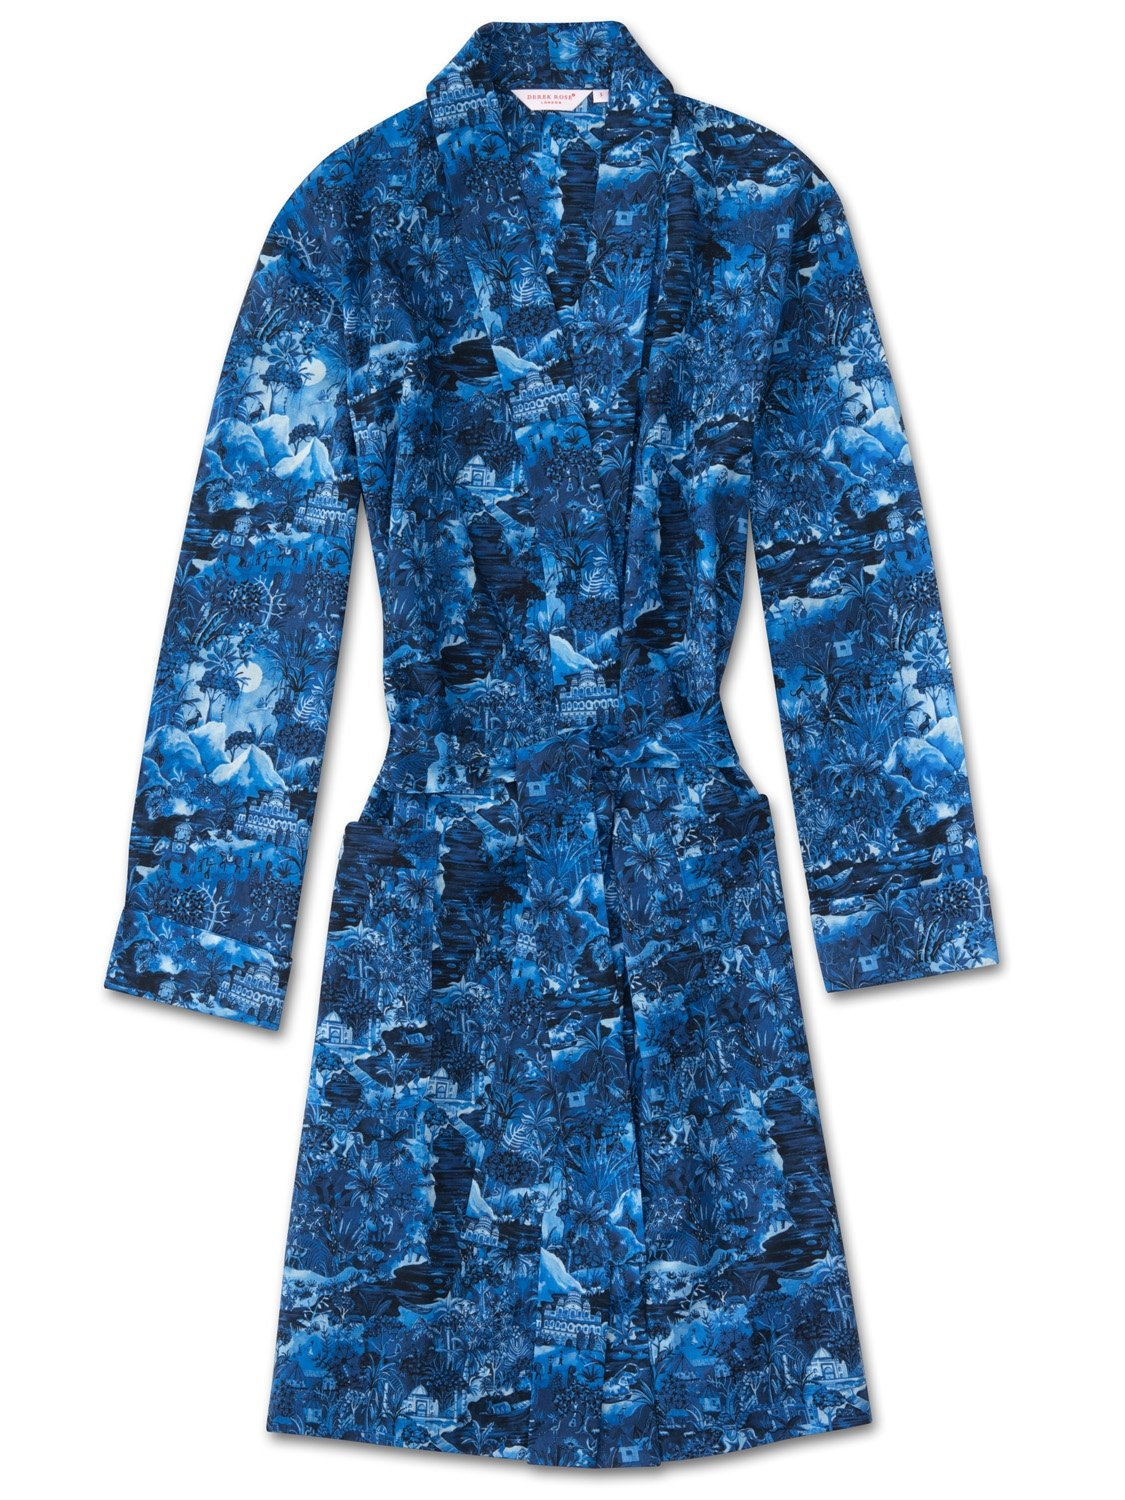 Women's Dressing Gown Ledbury 10 Cotton Batiste Blue